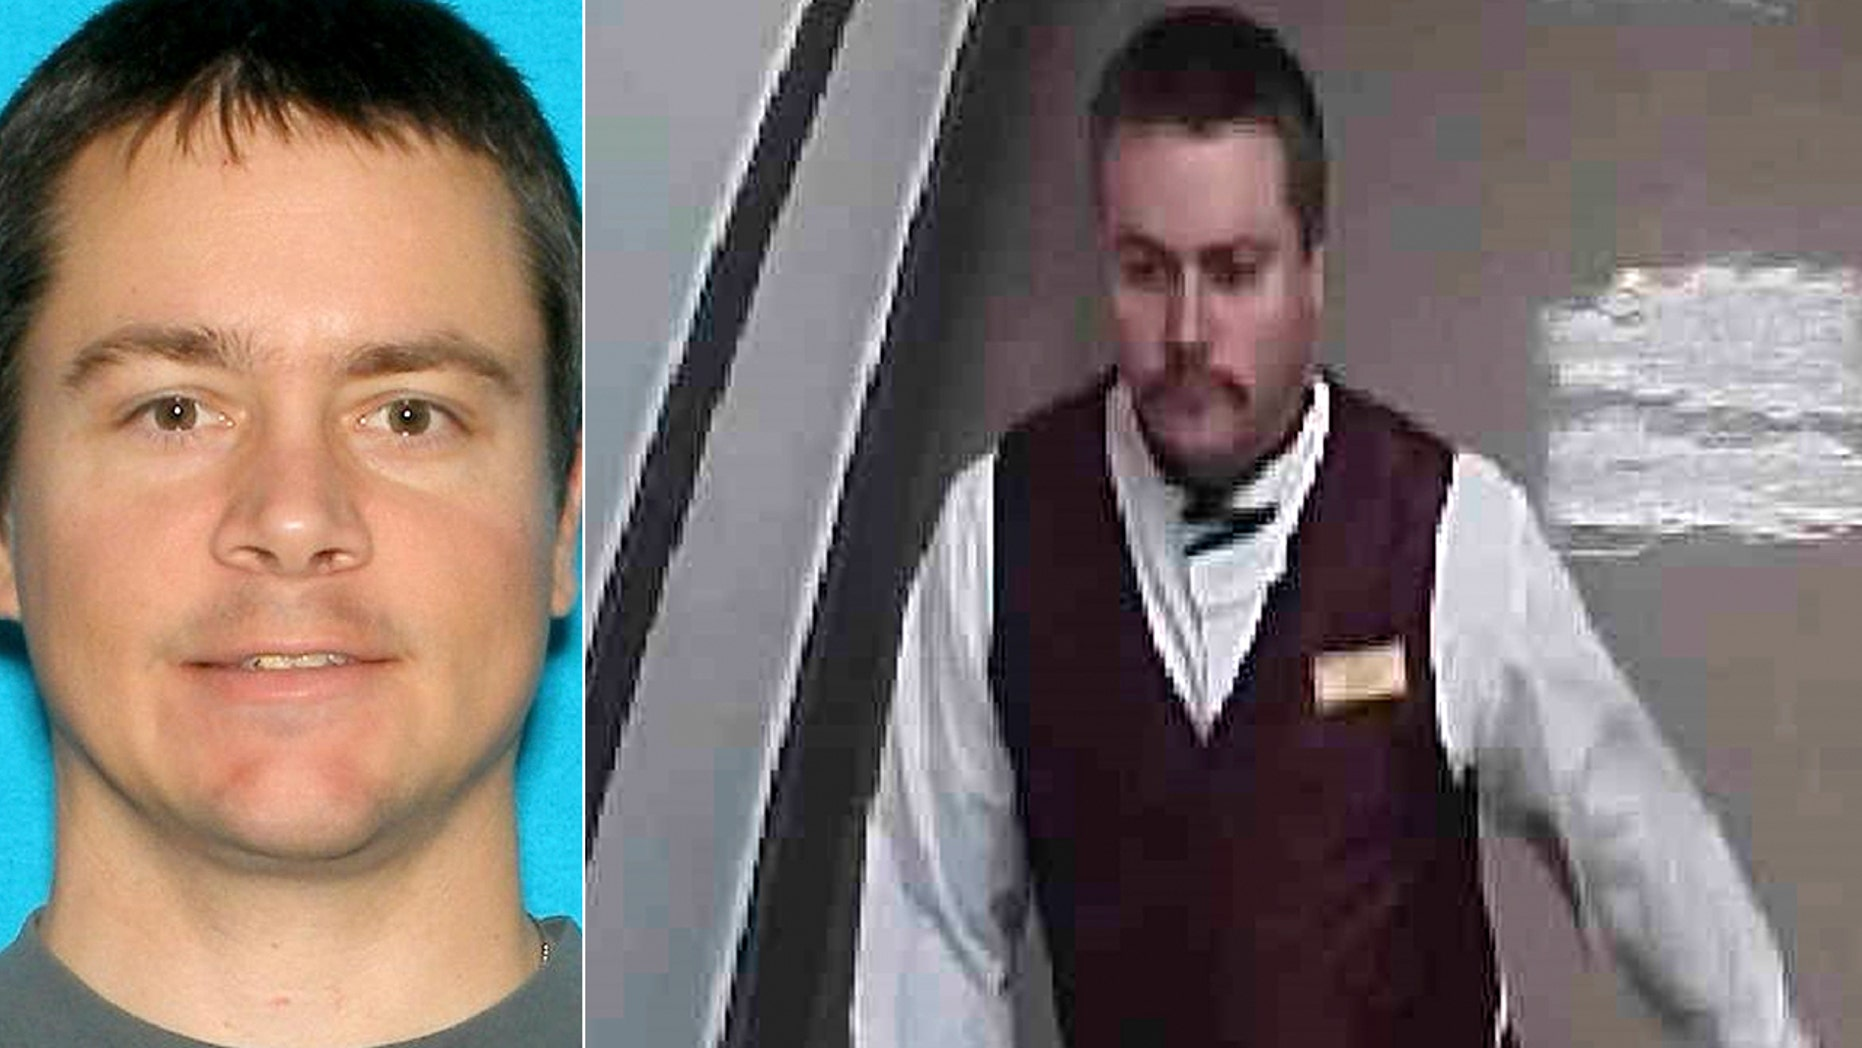 Anthony Wrobel, 42, allegedly shot and killed a co-worker and wounded a casino executive at a picnic.